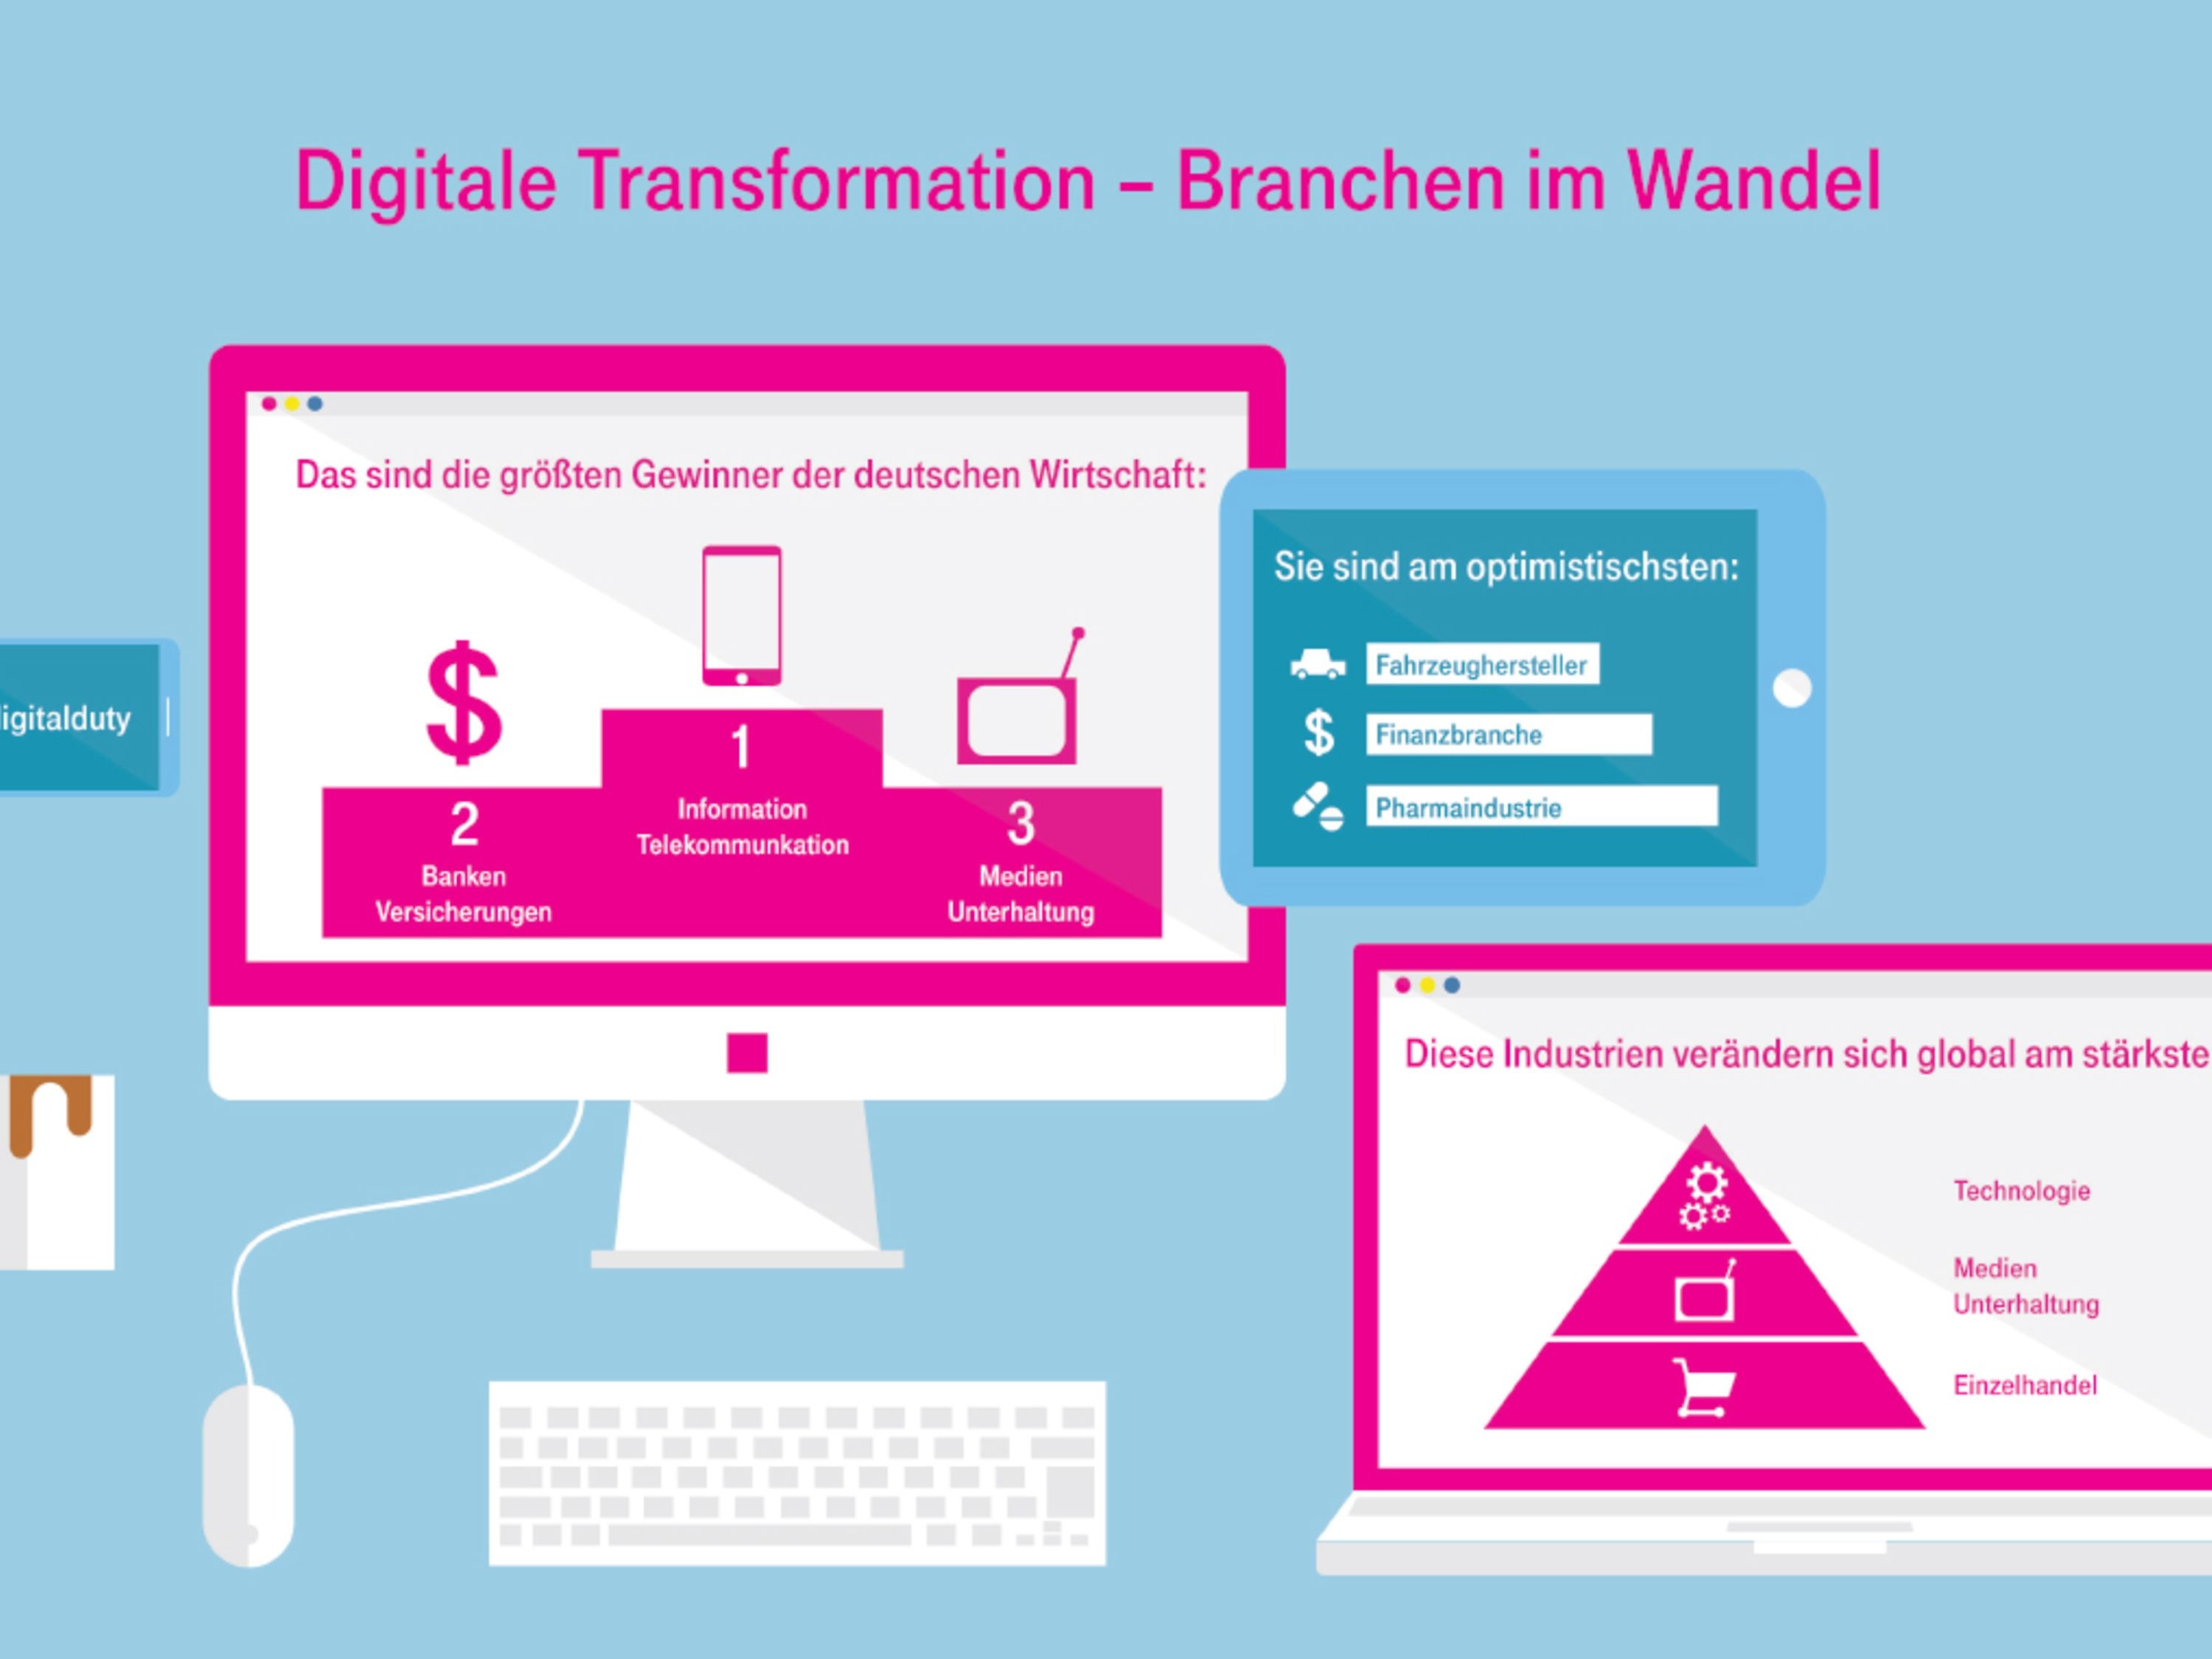 Digitale Transformation - Grafik